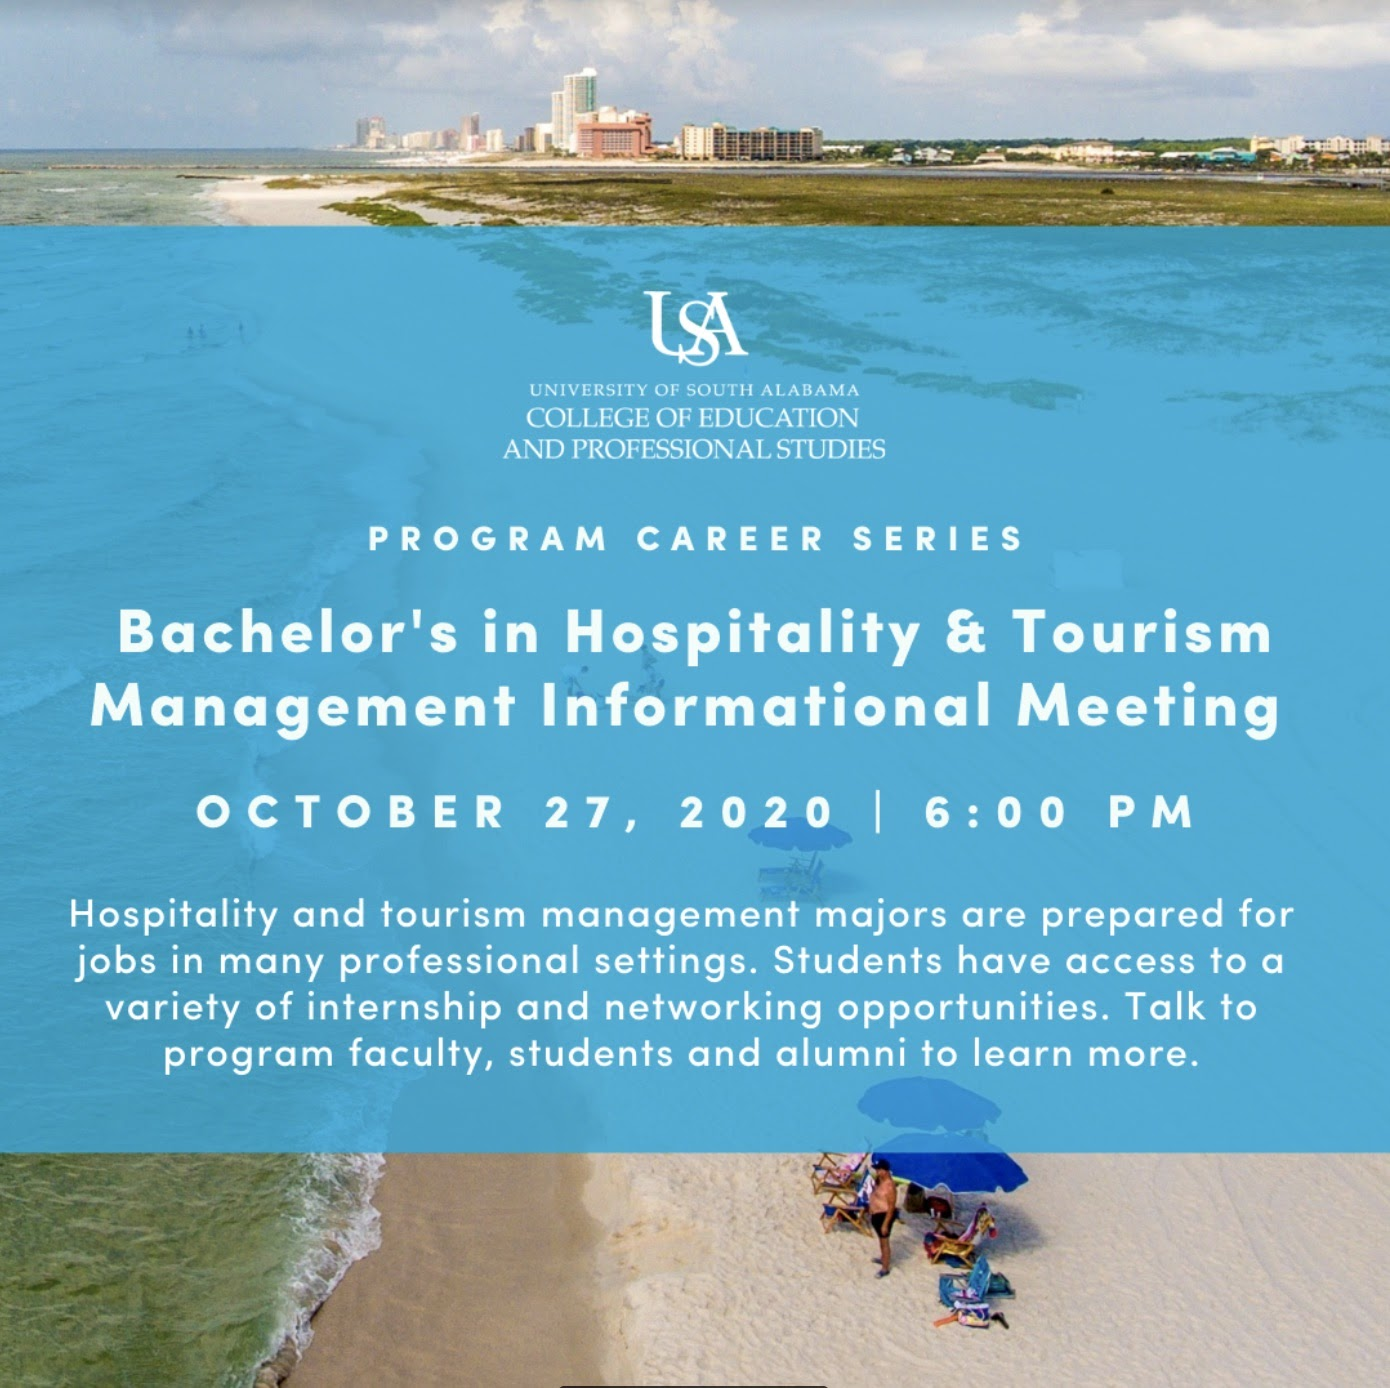 Hospitality and Tourism Management Meeting meeting info